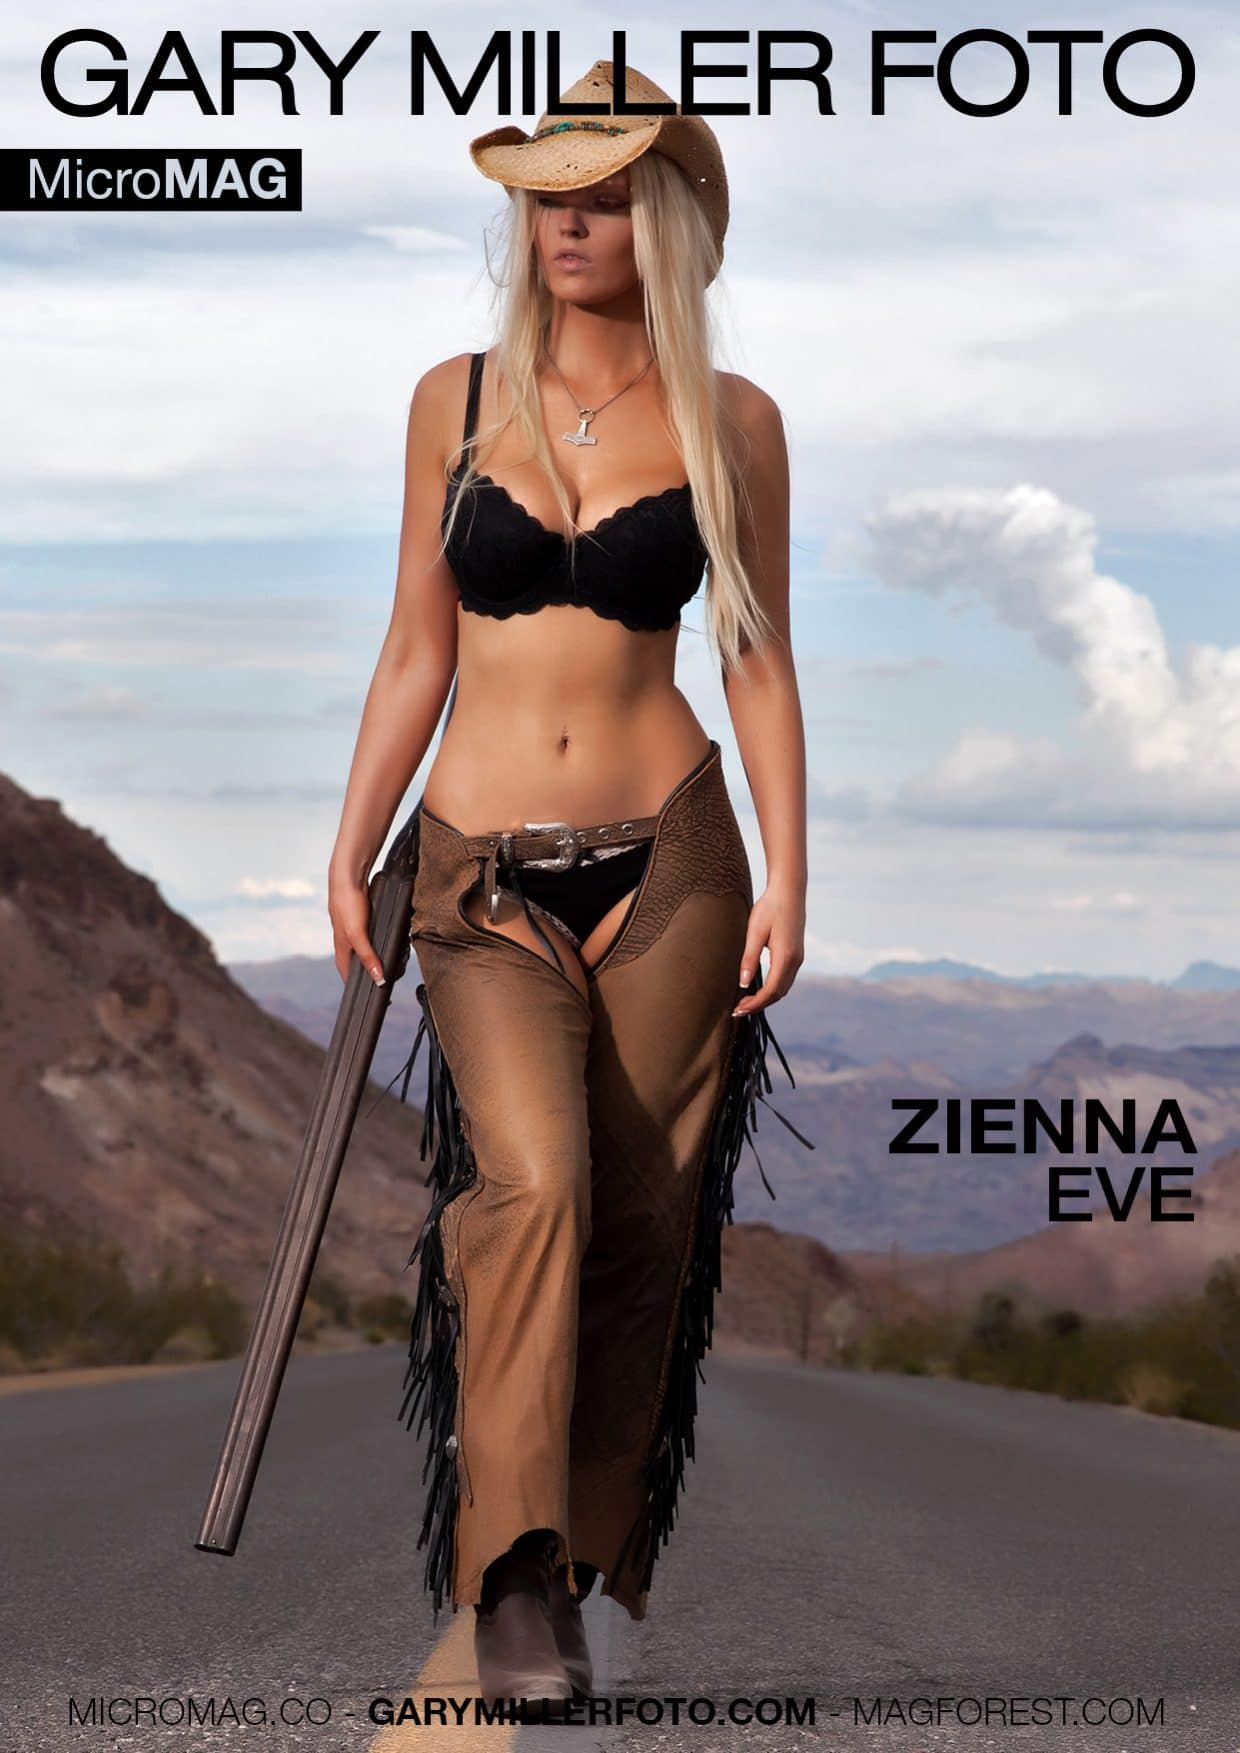 Gary Miller Foto Micromag – Zienna Eve – Issue 2